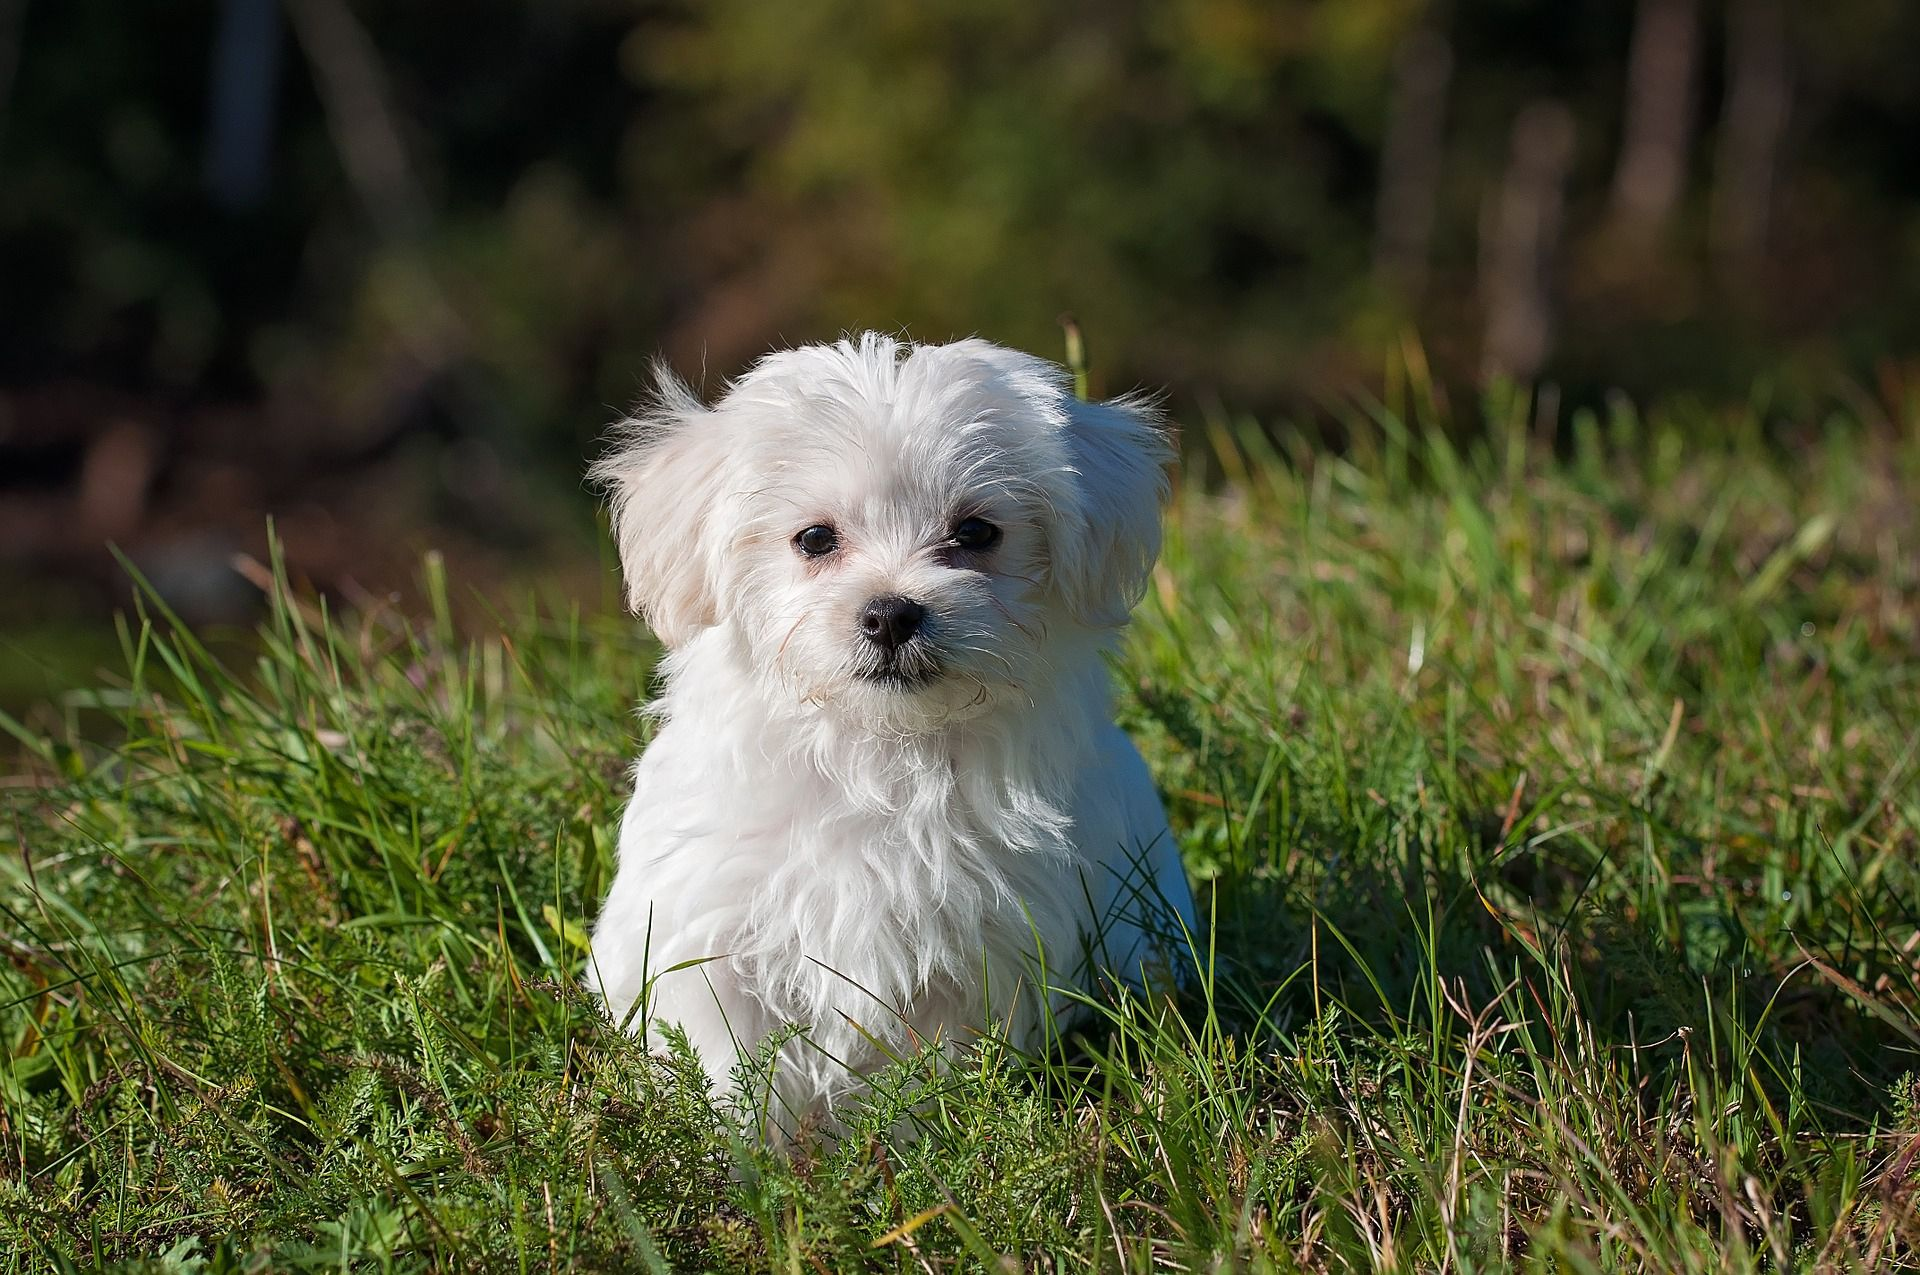 What A Cutie Little Maltese Puppy In The Grass Ready For